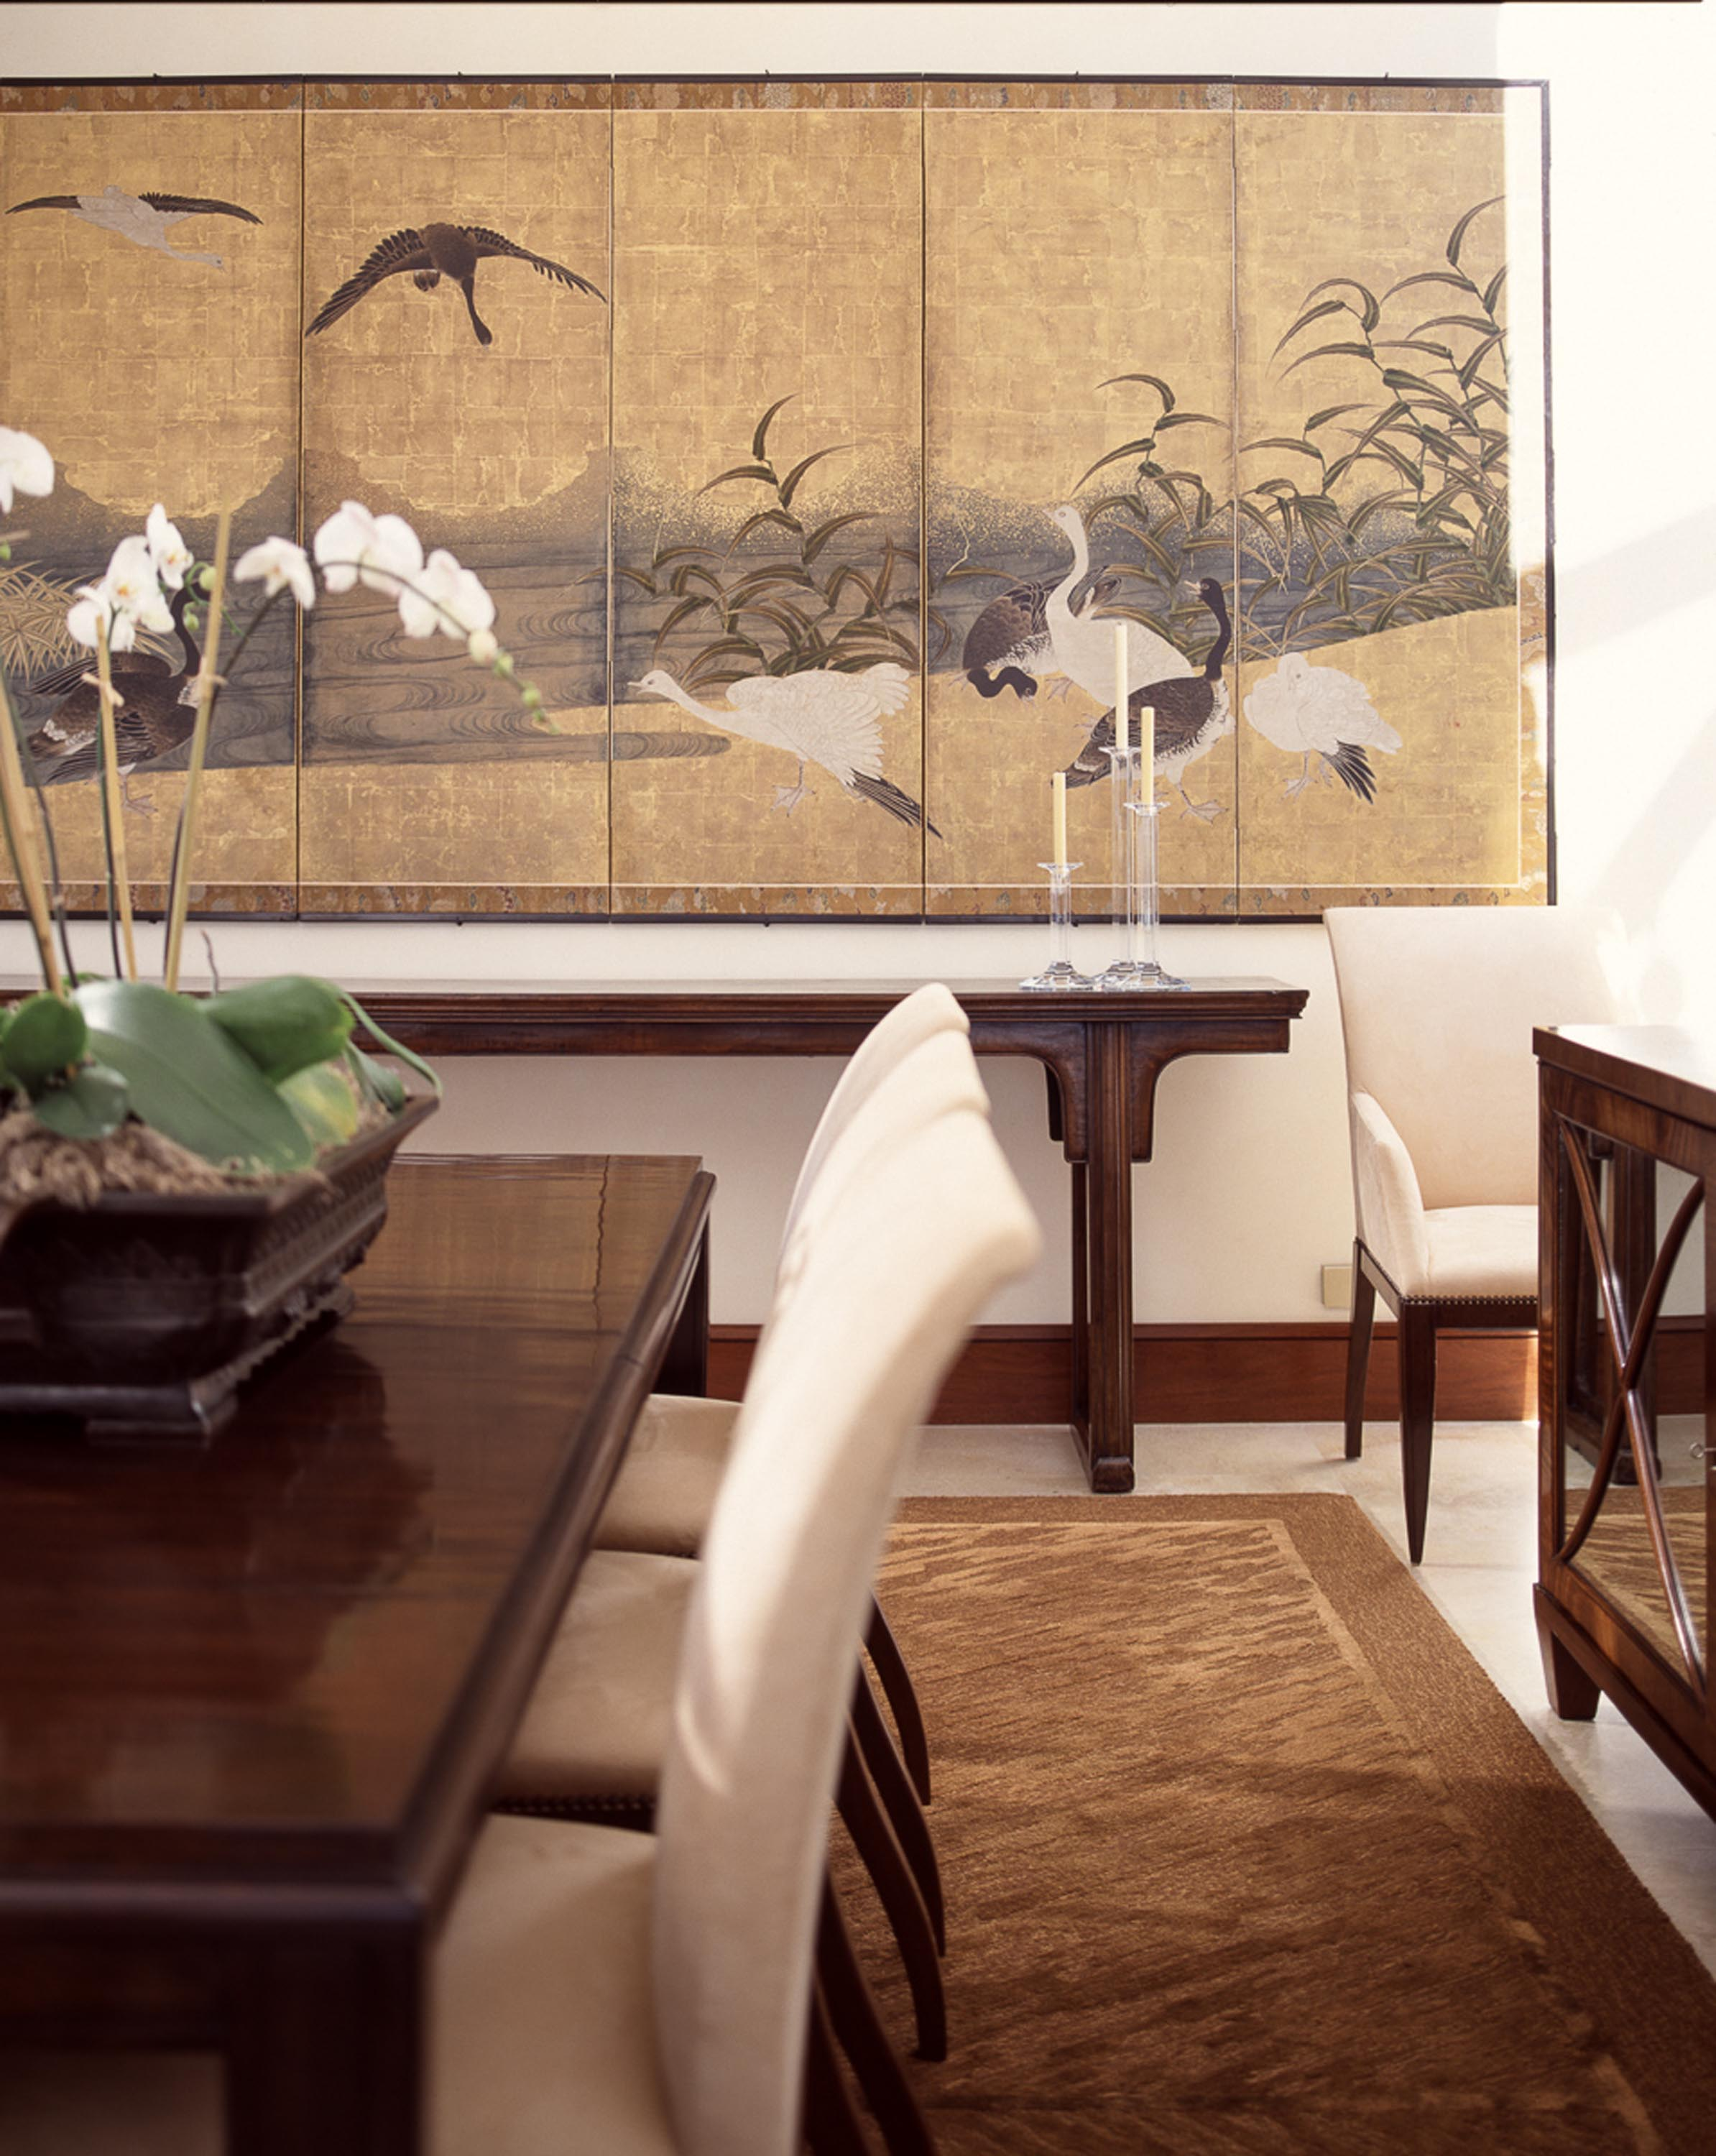 Dining room with wooden table and a plant on top, and frame on wall